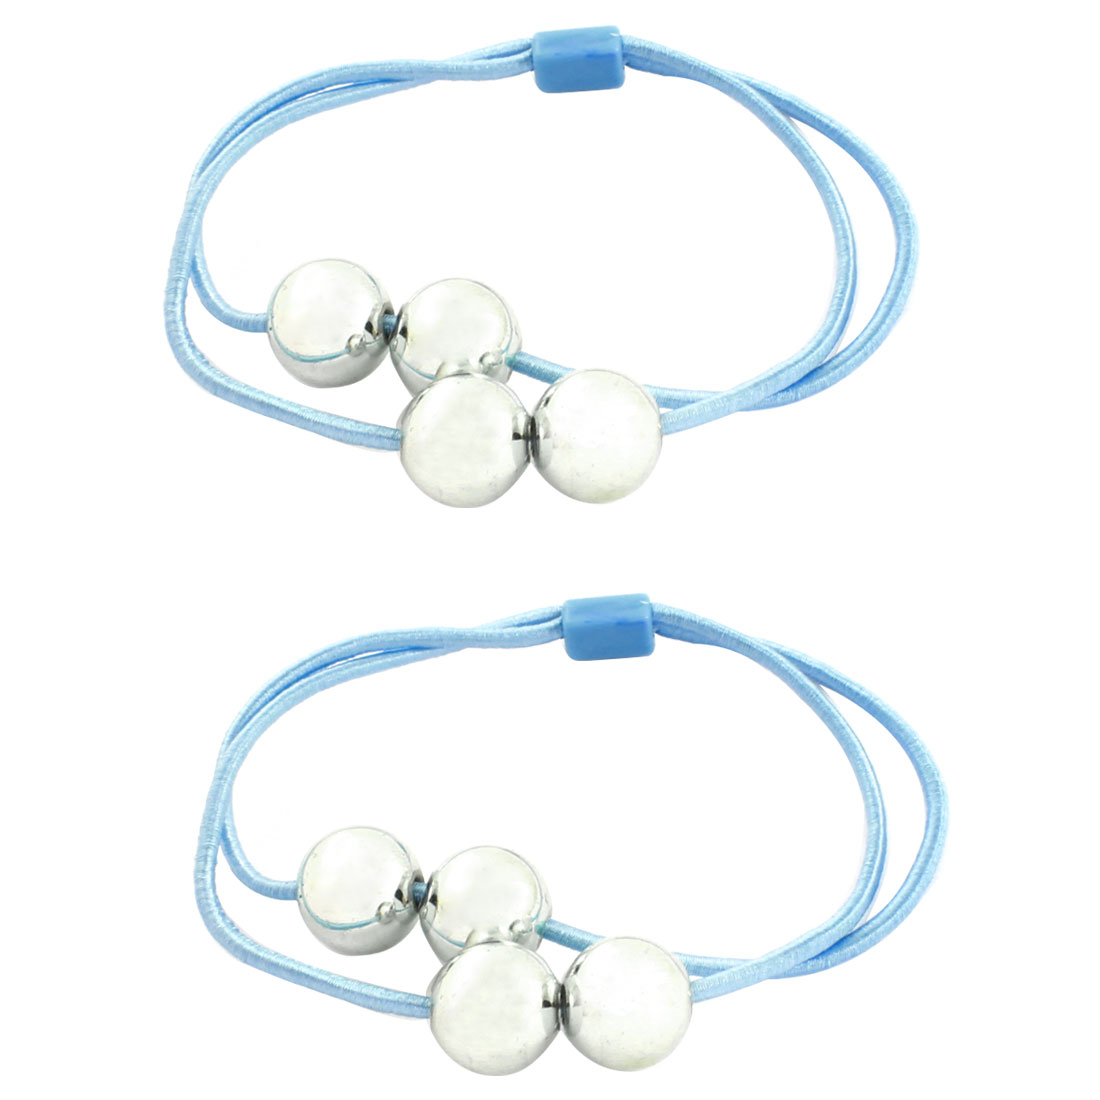 Silver Tone Round Plastic Beads Decor Light Blue Hair Band Ponytail Holder 2 Pcs